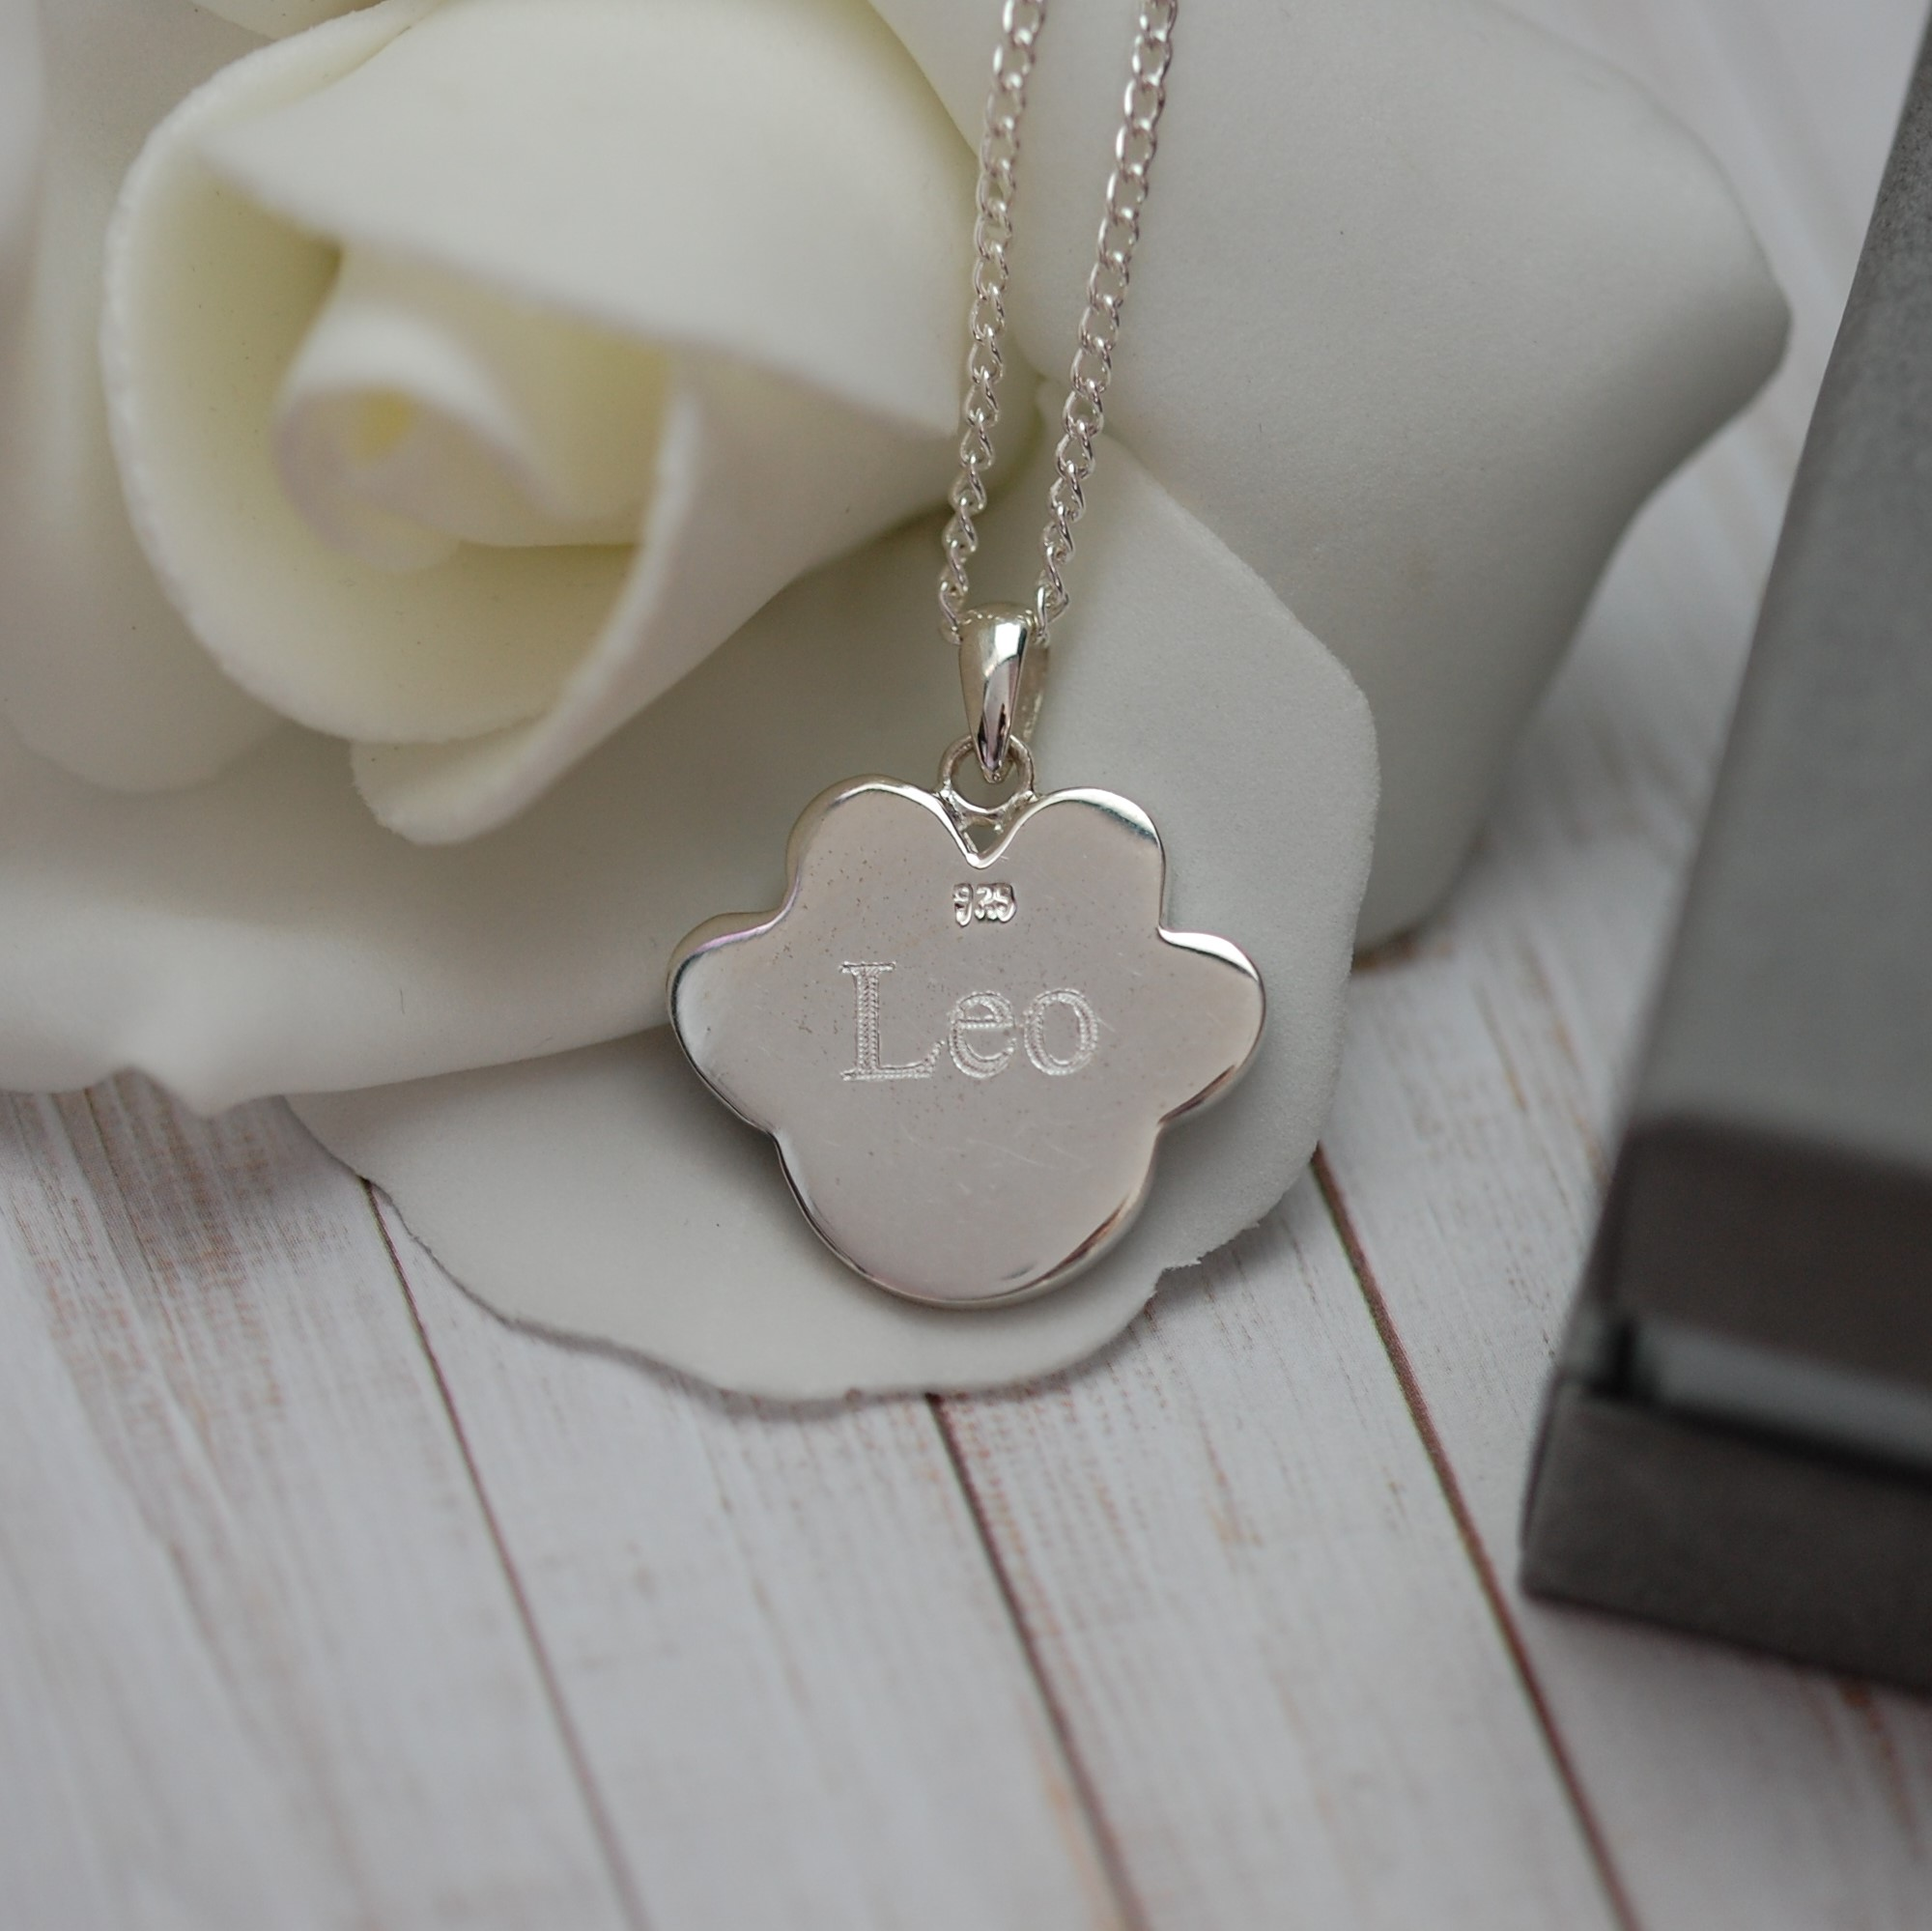 """""""Leo"""" engraved on the back of the dog memorial paw print ashes pendant"""